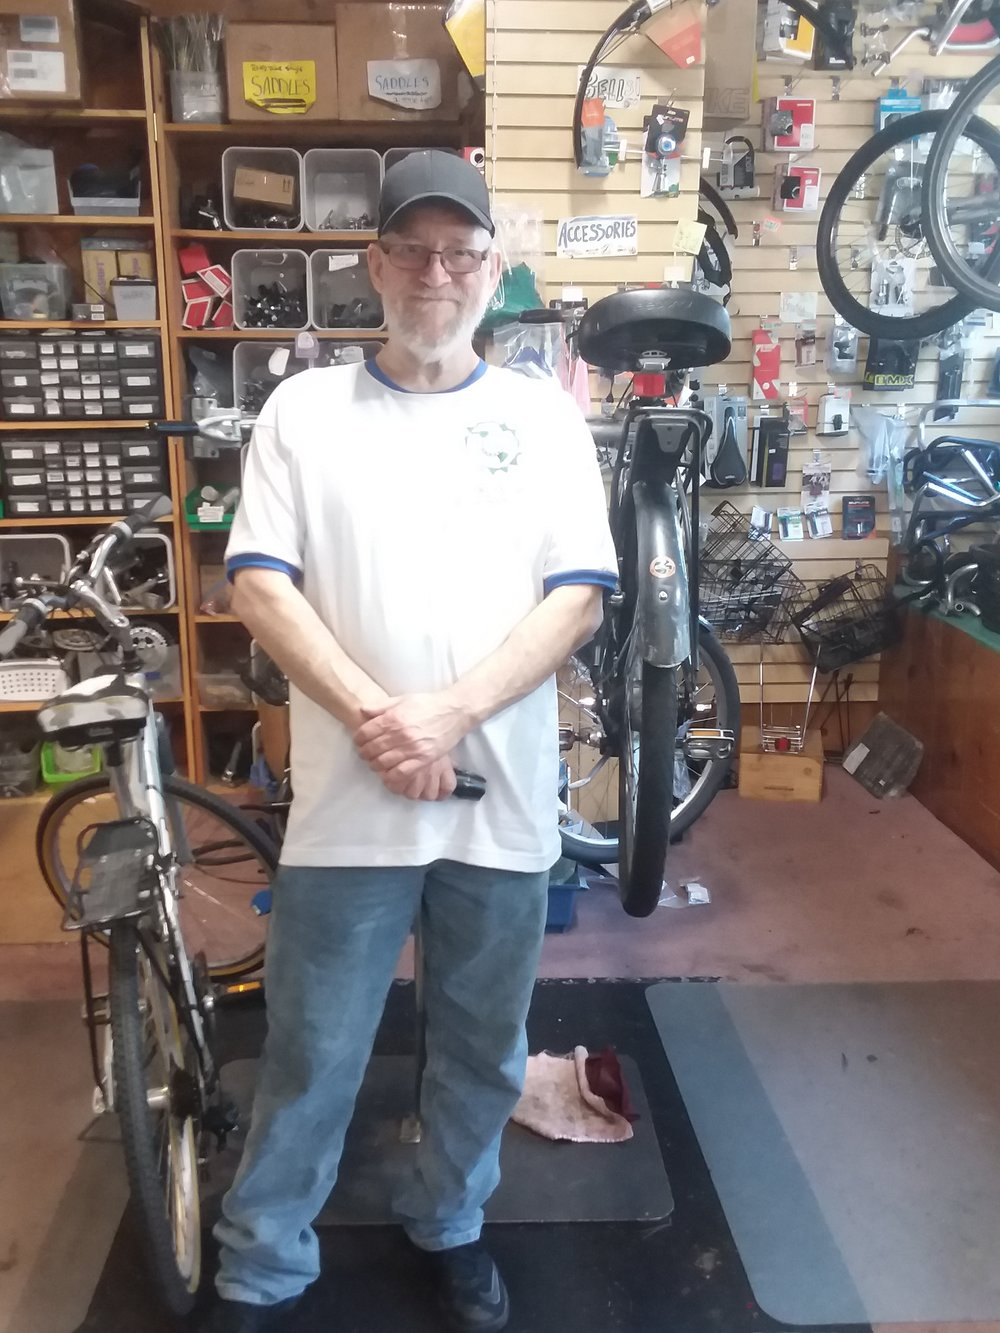 Image of Dave standing in the Bikes For Humanity PDX bike-shop in front of a bike stand. There is a bicycle to the right-hand side of the image and one suspended in the bike stand Dave is in front of.